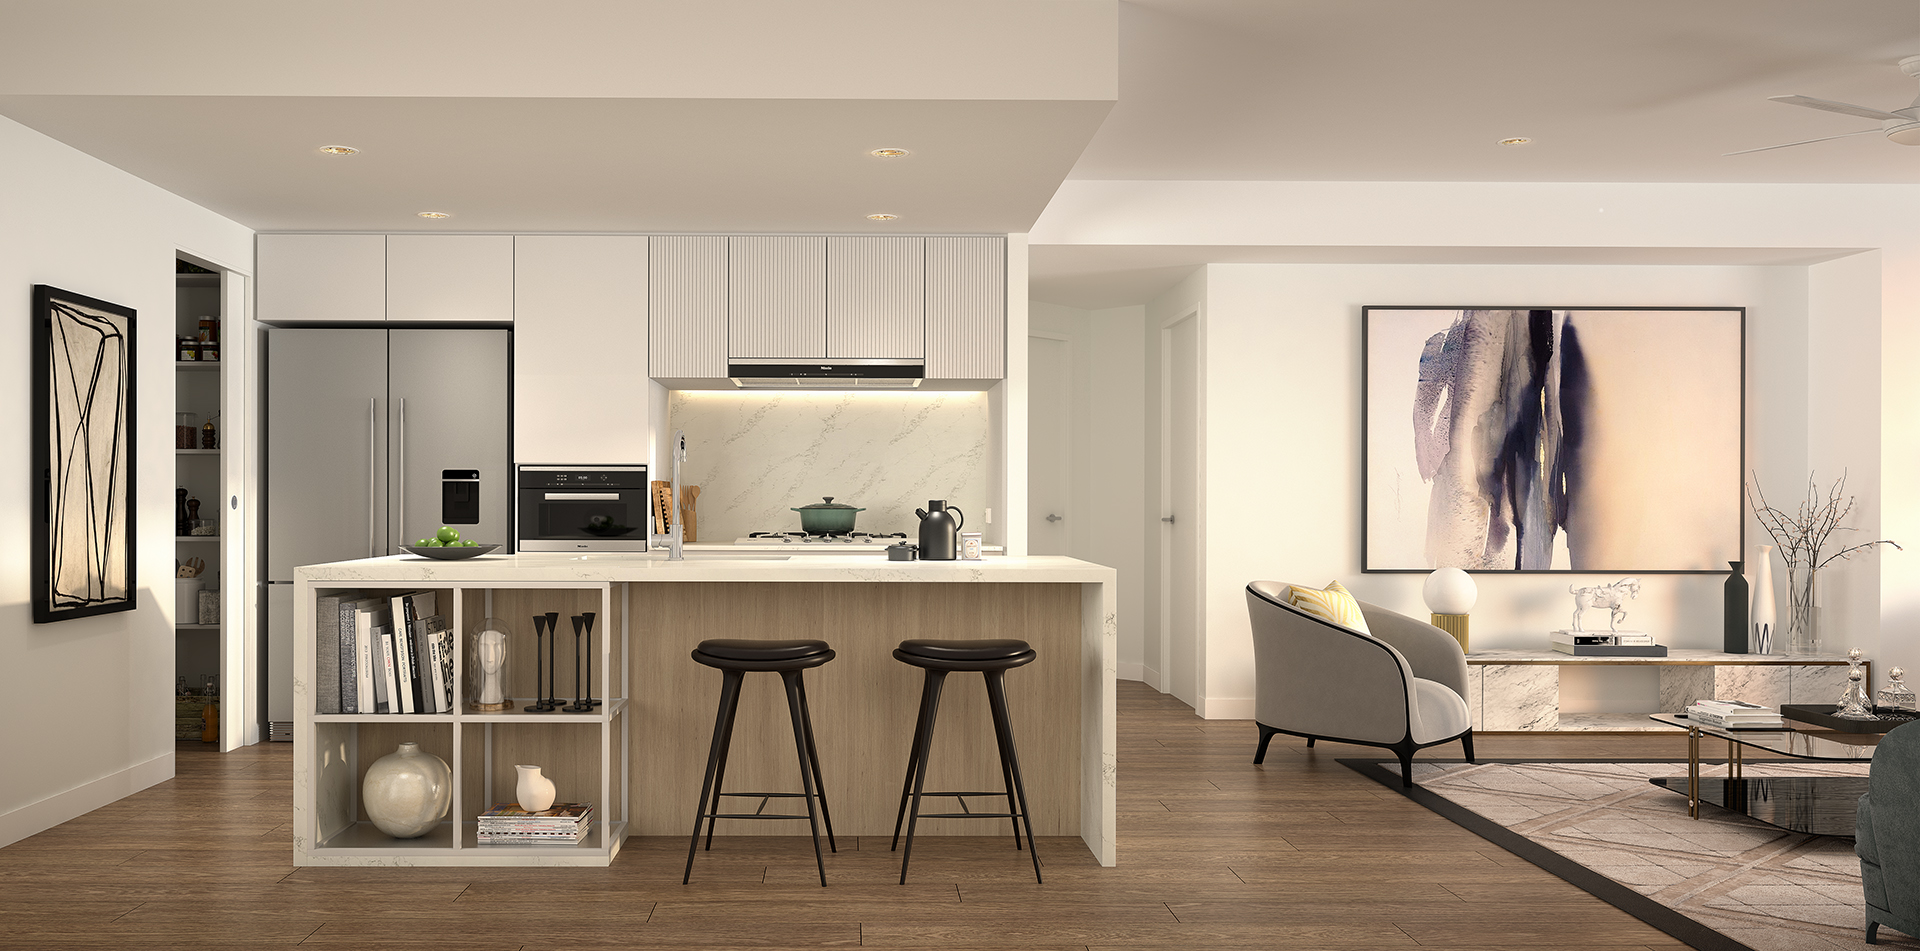 Copy of The One Residences 3 bed Kitchen